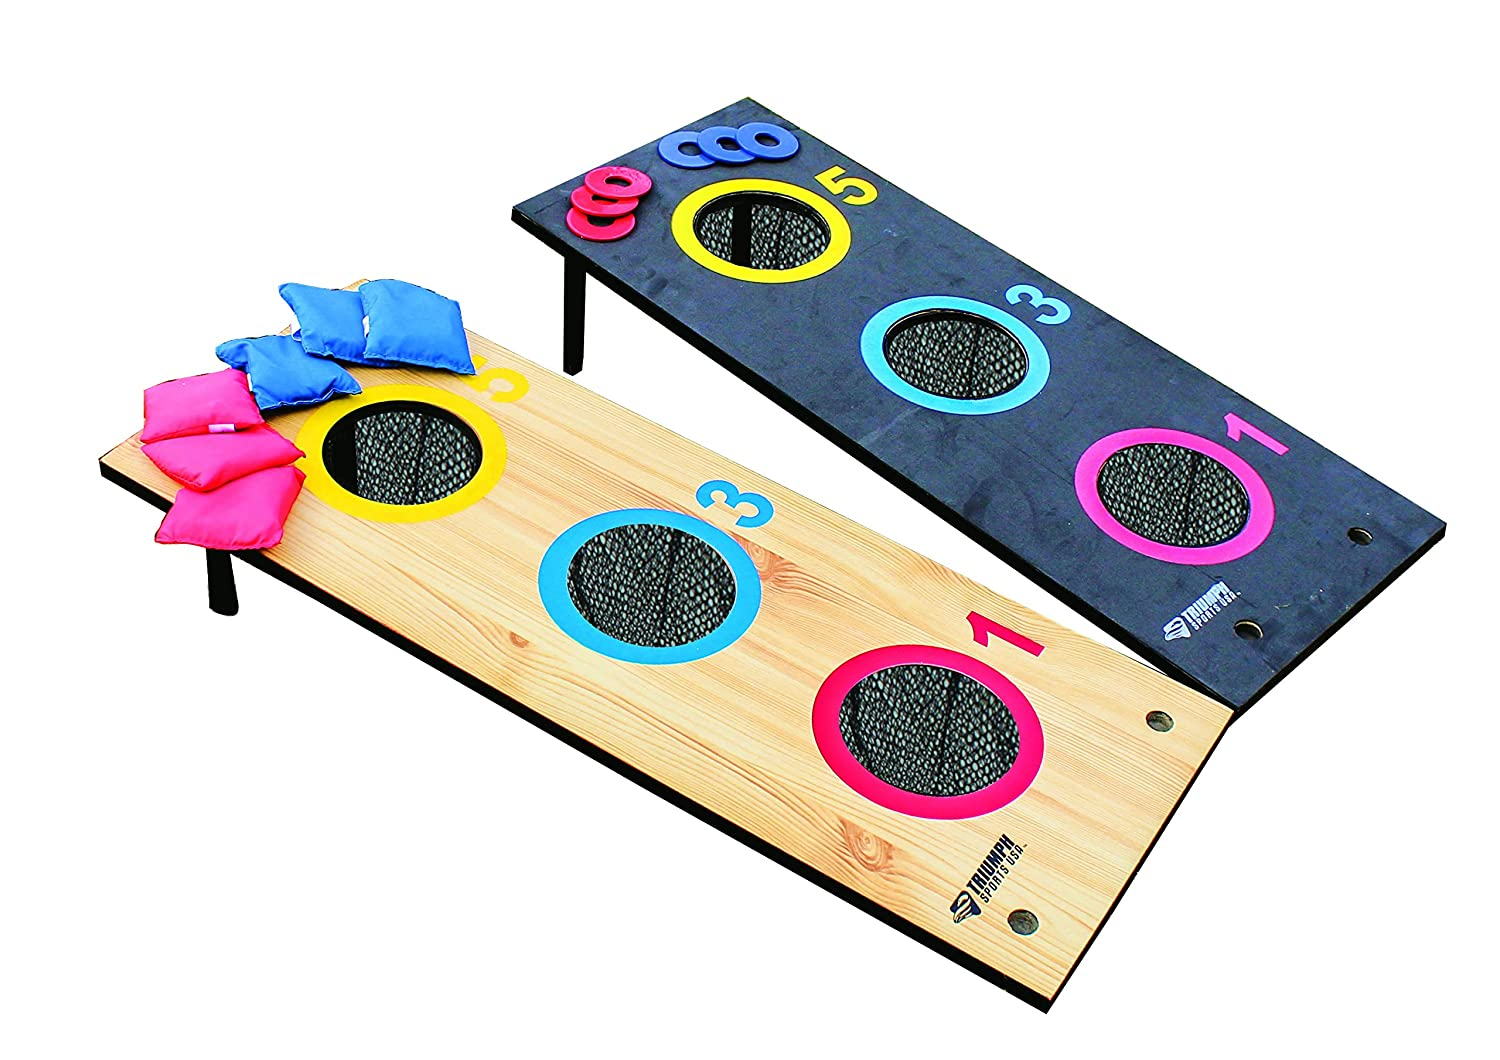 Escalade Sports 2-in-1 3 Hole Bags and Washer Toss Combo